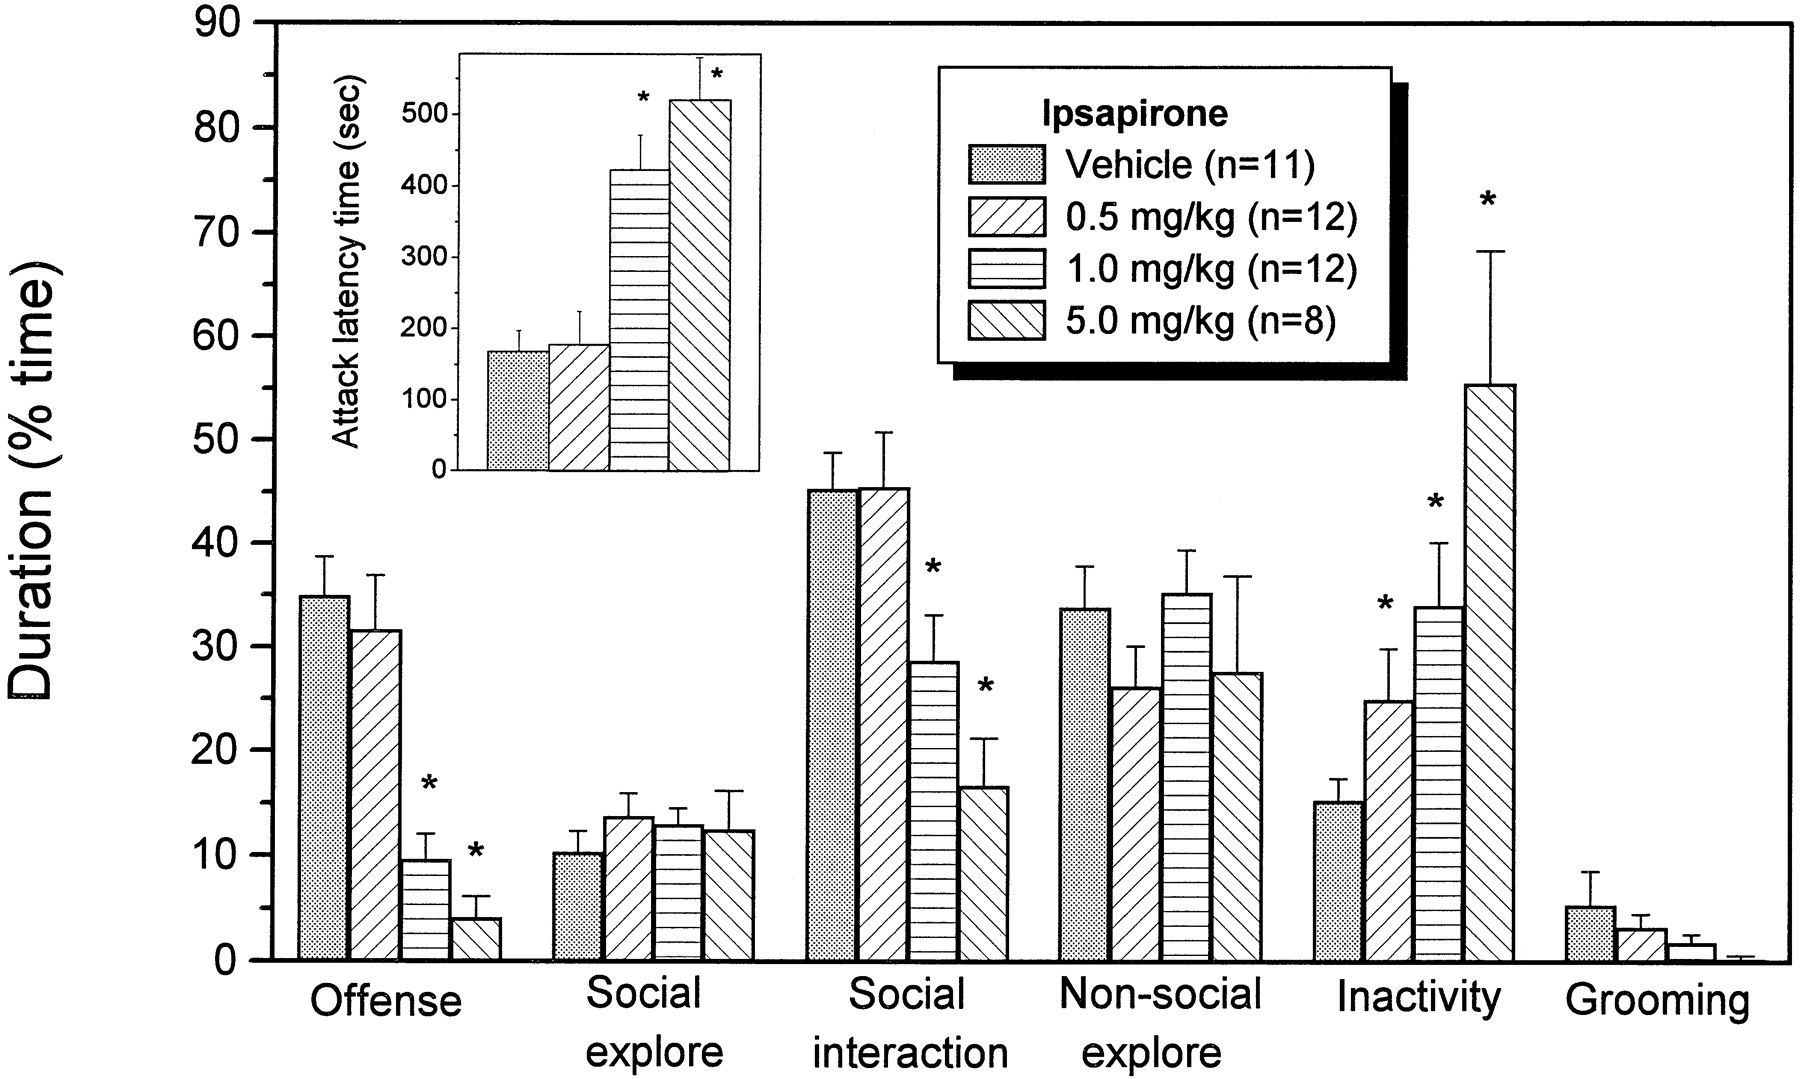 Selective Antiaggressive Effects of Alnespirone in